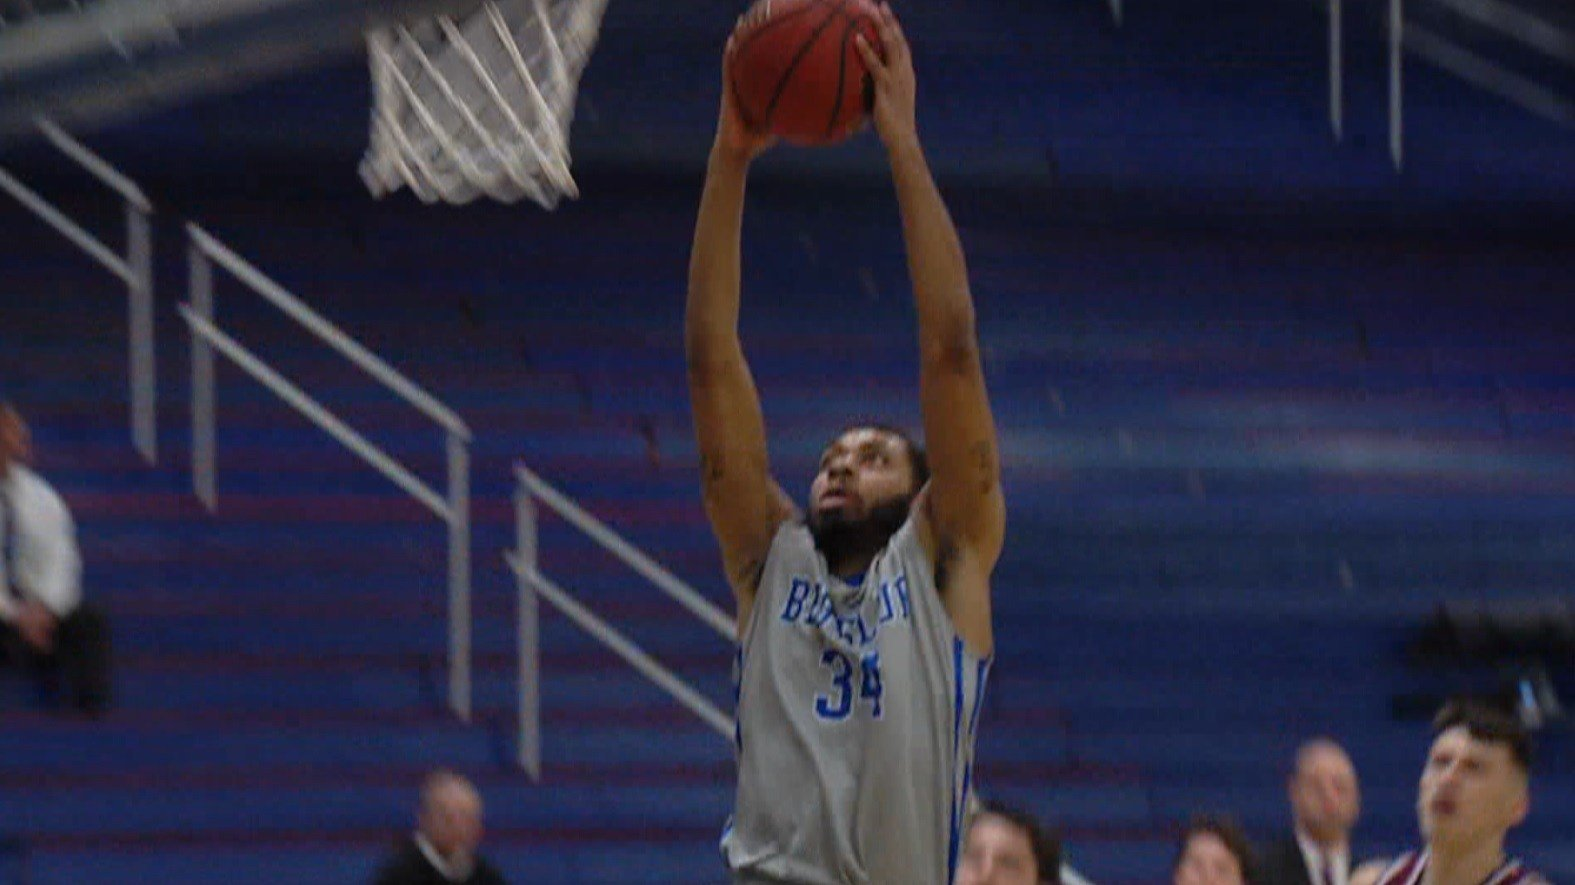 Junior college transfer Elijah Henry (Evanston, Ill.) has burst onto the scene in his first year with the Big Blue, leading the team with 16.1 points and 8.2 rebounds per game.